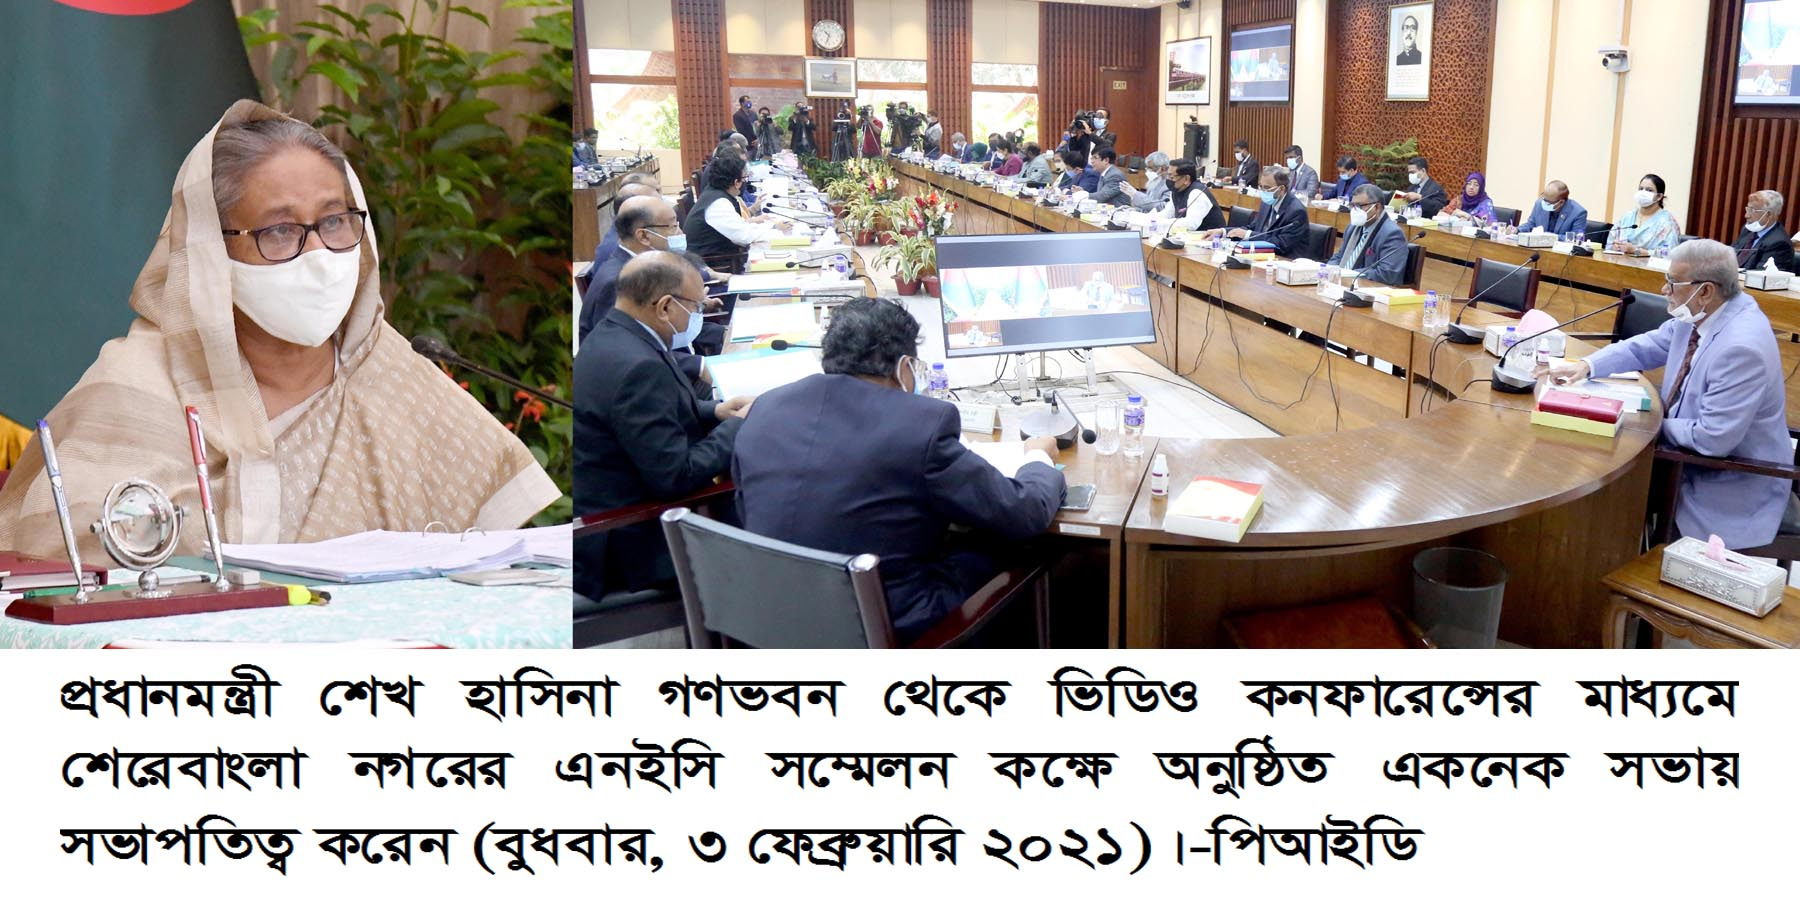 Sheikh Hasina attends crucial events